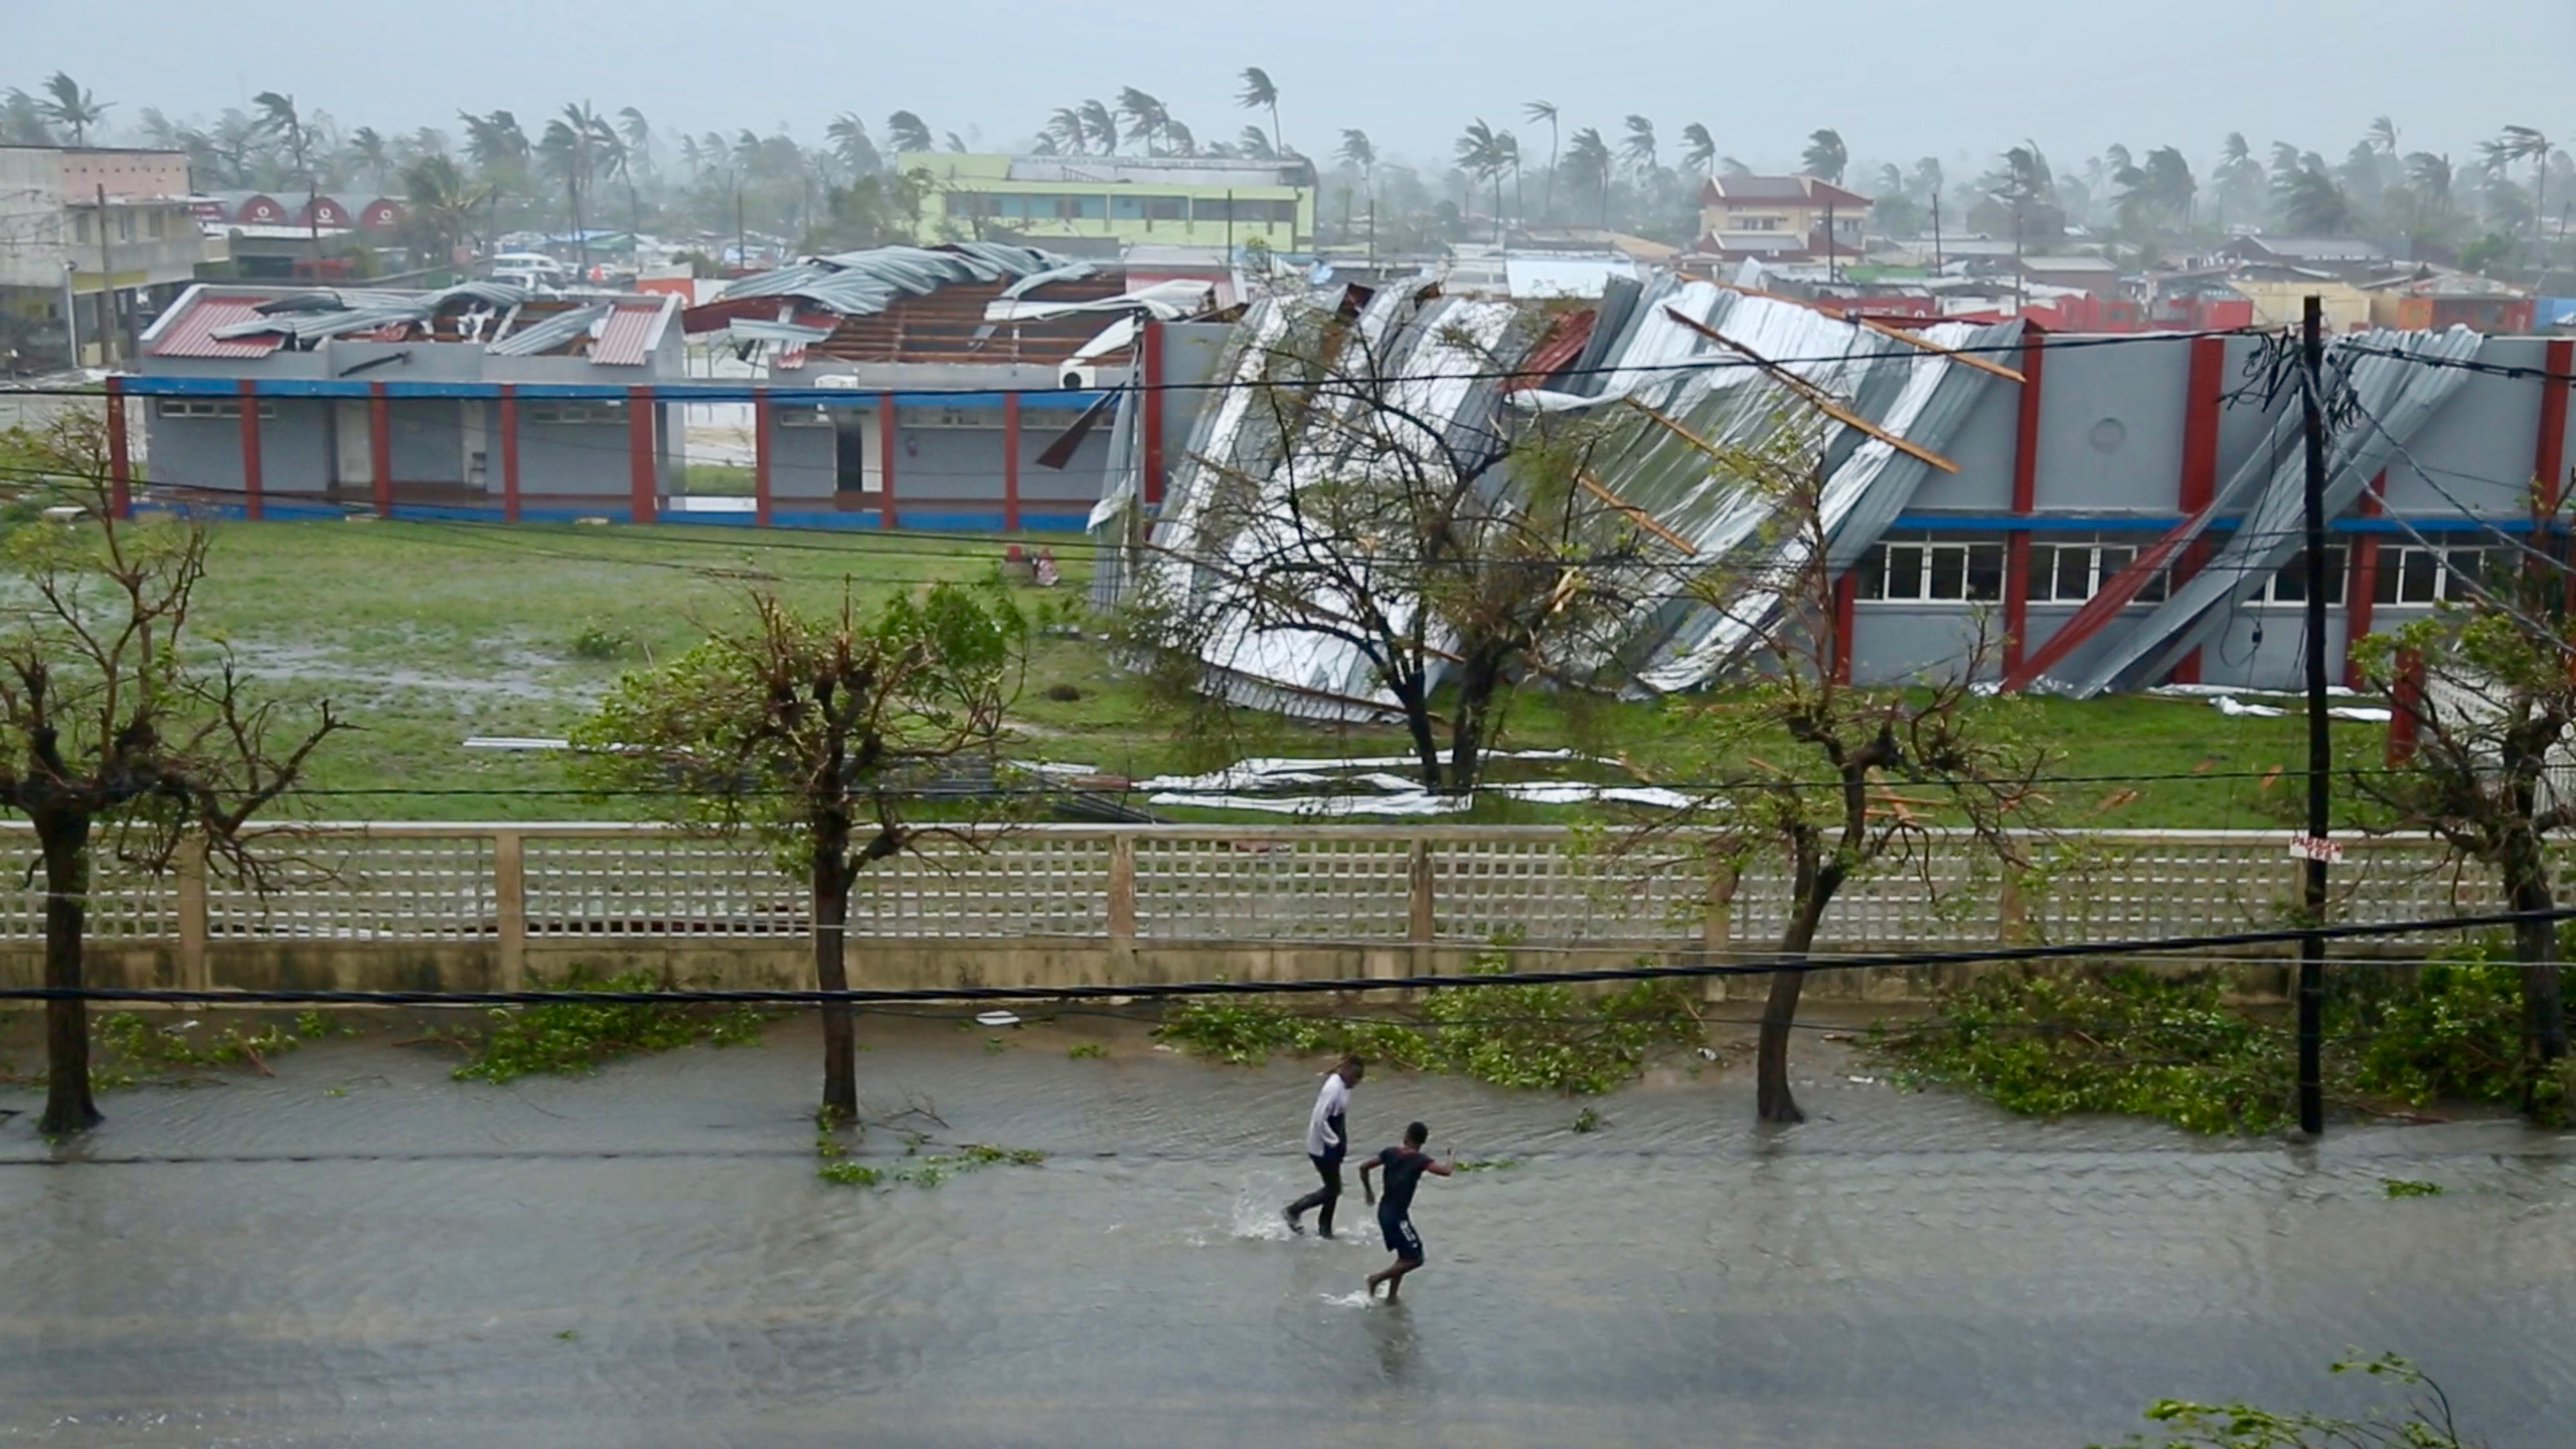 Cyclone Idai's destruction shows how vulnerable low-lying African cities are to extreme weather